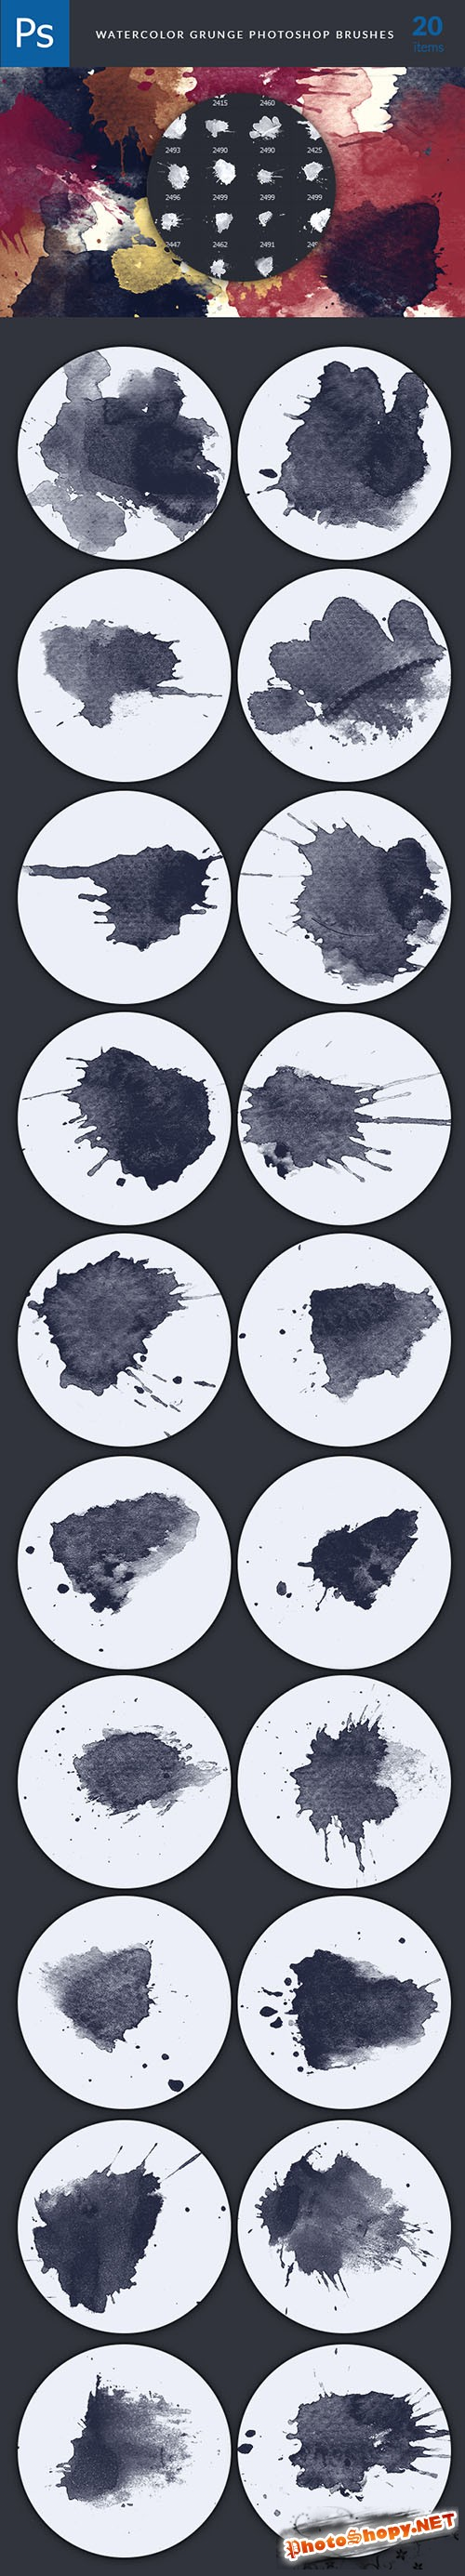 Watercolor Grunge Photoshop Brushes Pack 2